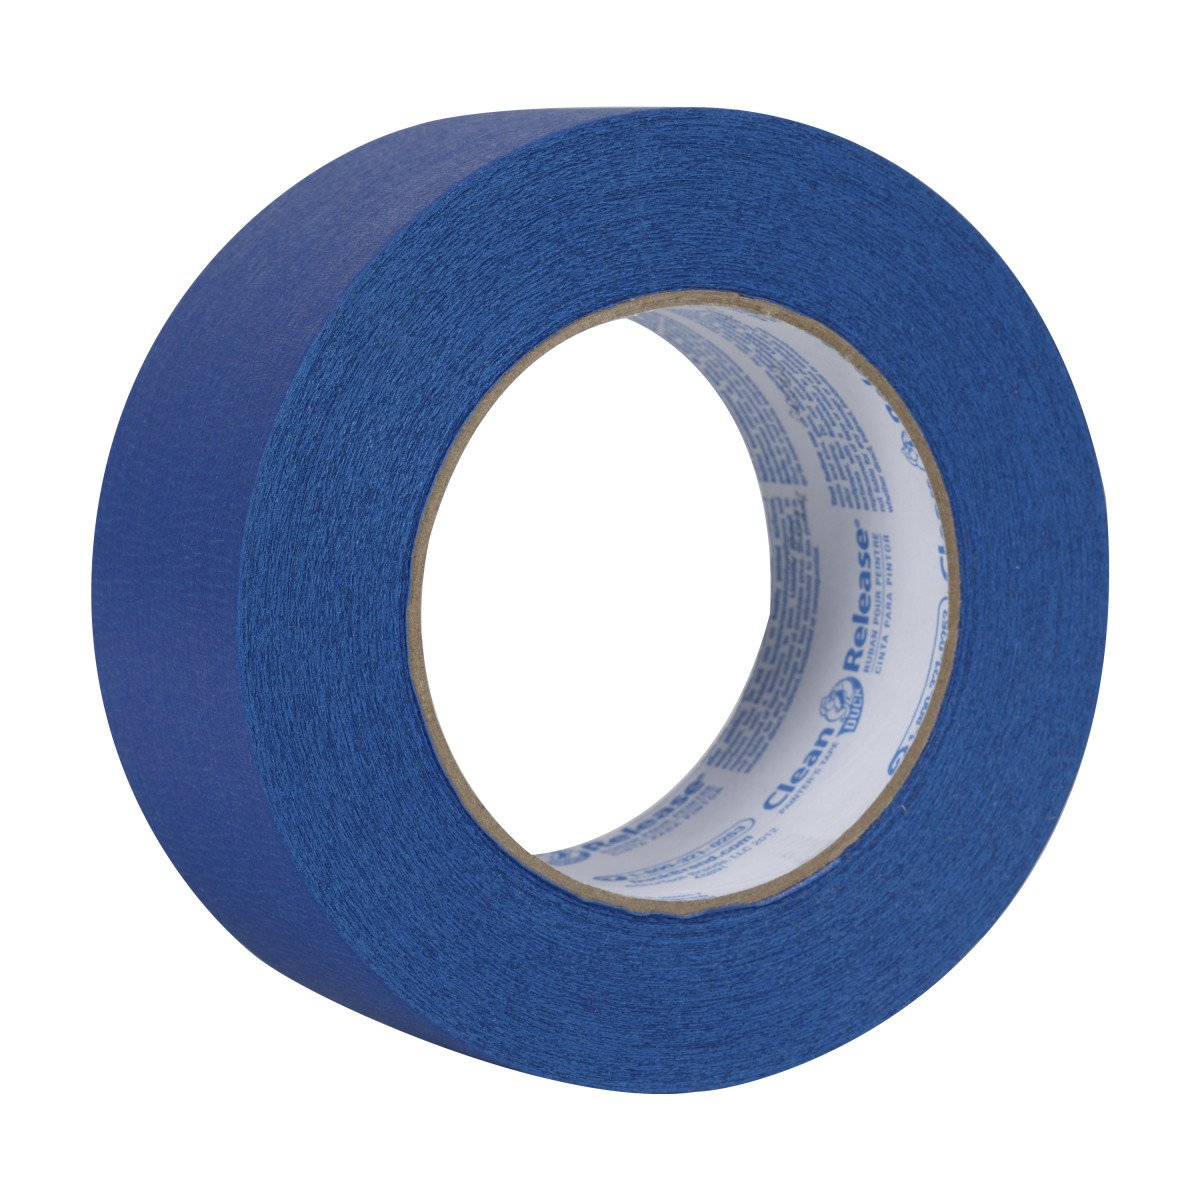 Duck Clean Release Blue Painter's Tape 2-Inch (1.88-Inch x 60-Yard), 12 Rolls, 720 Total Yards, 284372 by Duck (Image #4)